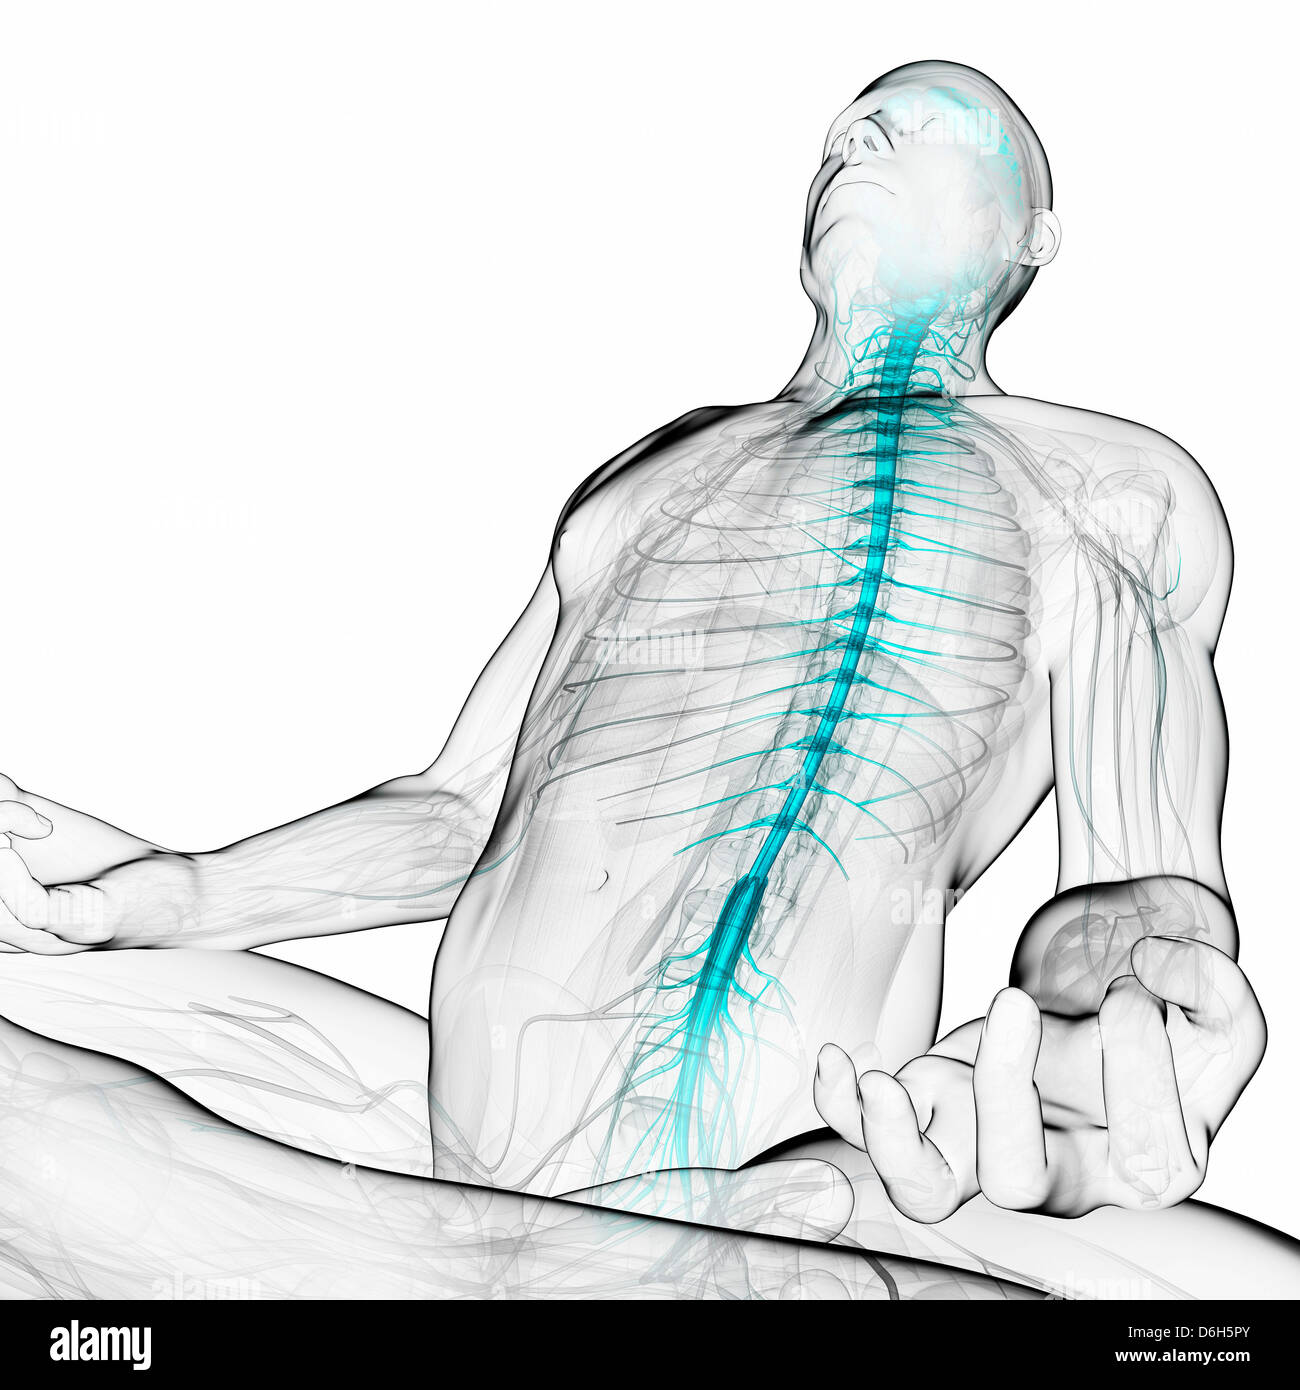 Healthy spinal cord, artwork - Stock Image